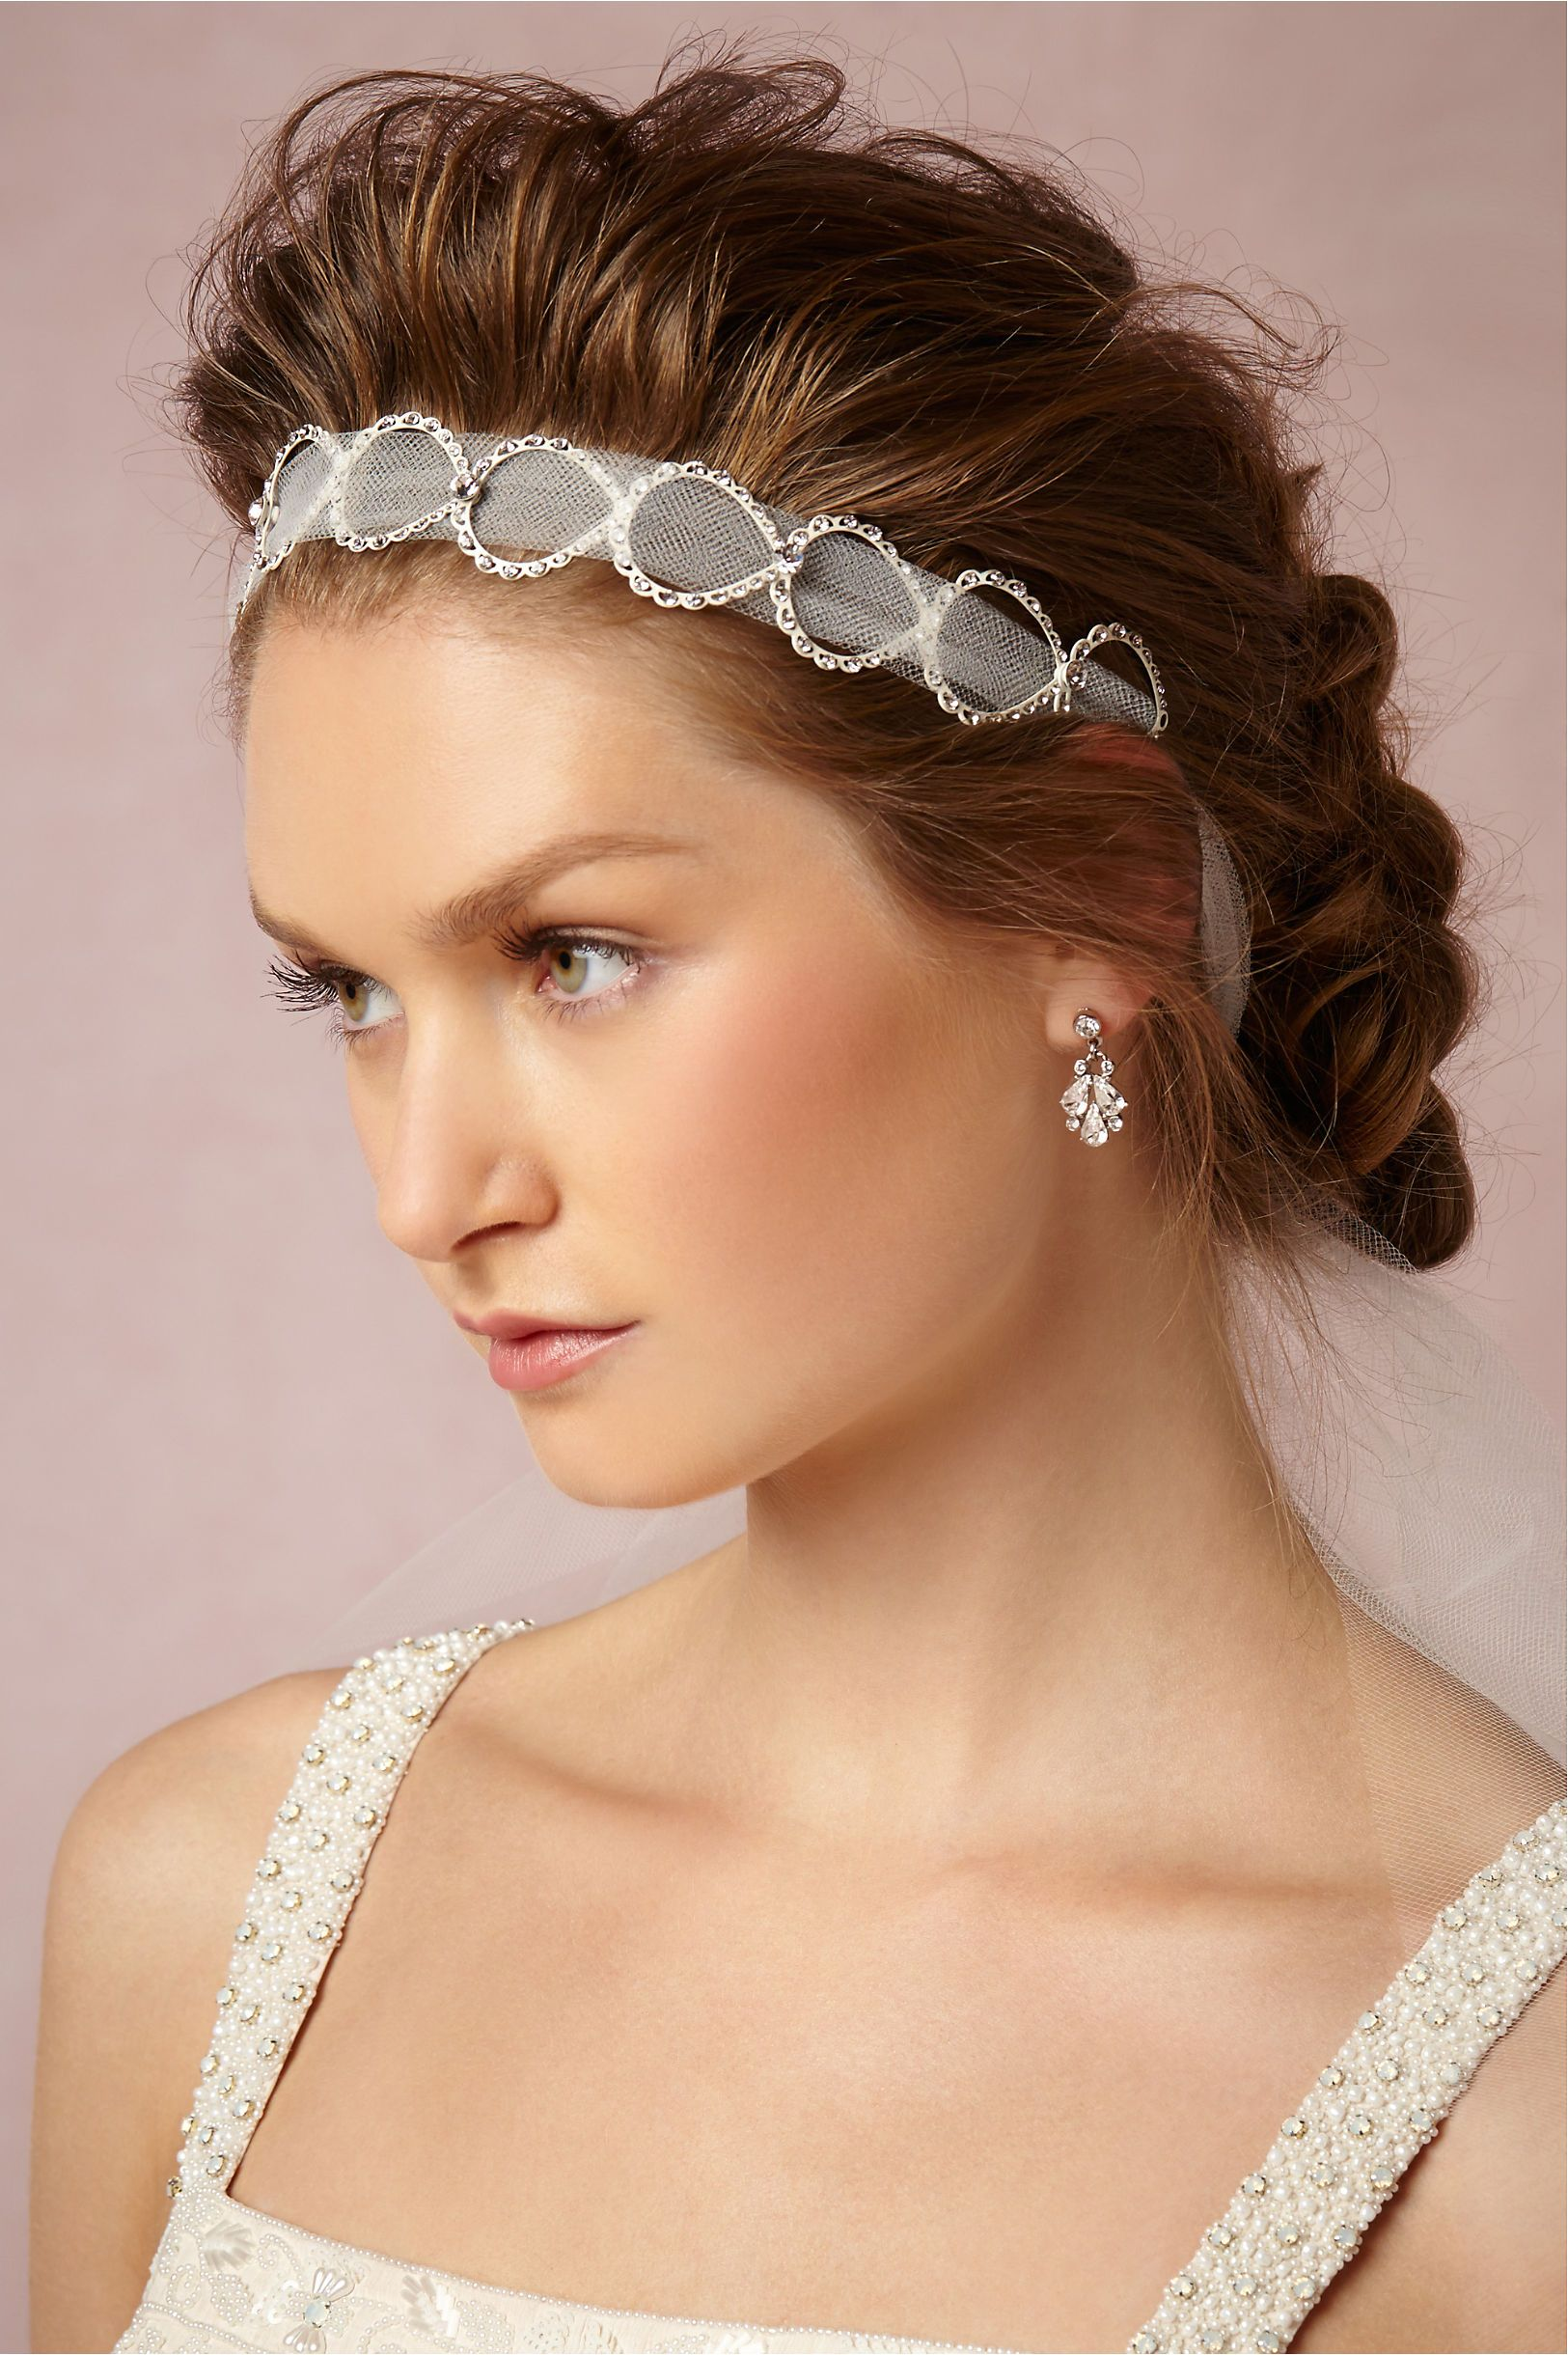 i used to do this with ribbon and a headband, but this is elegant